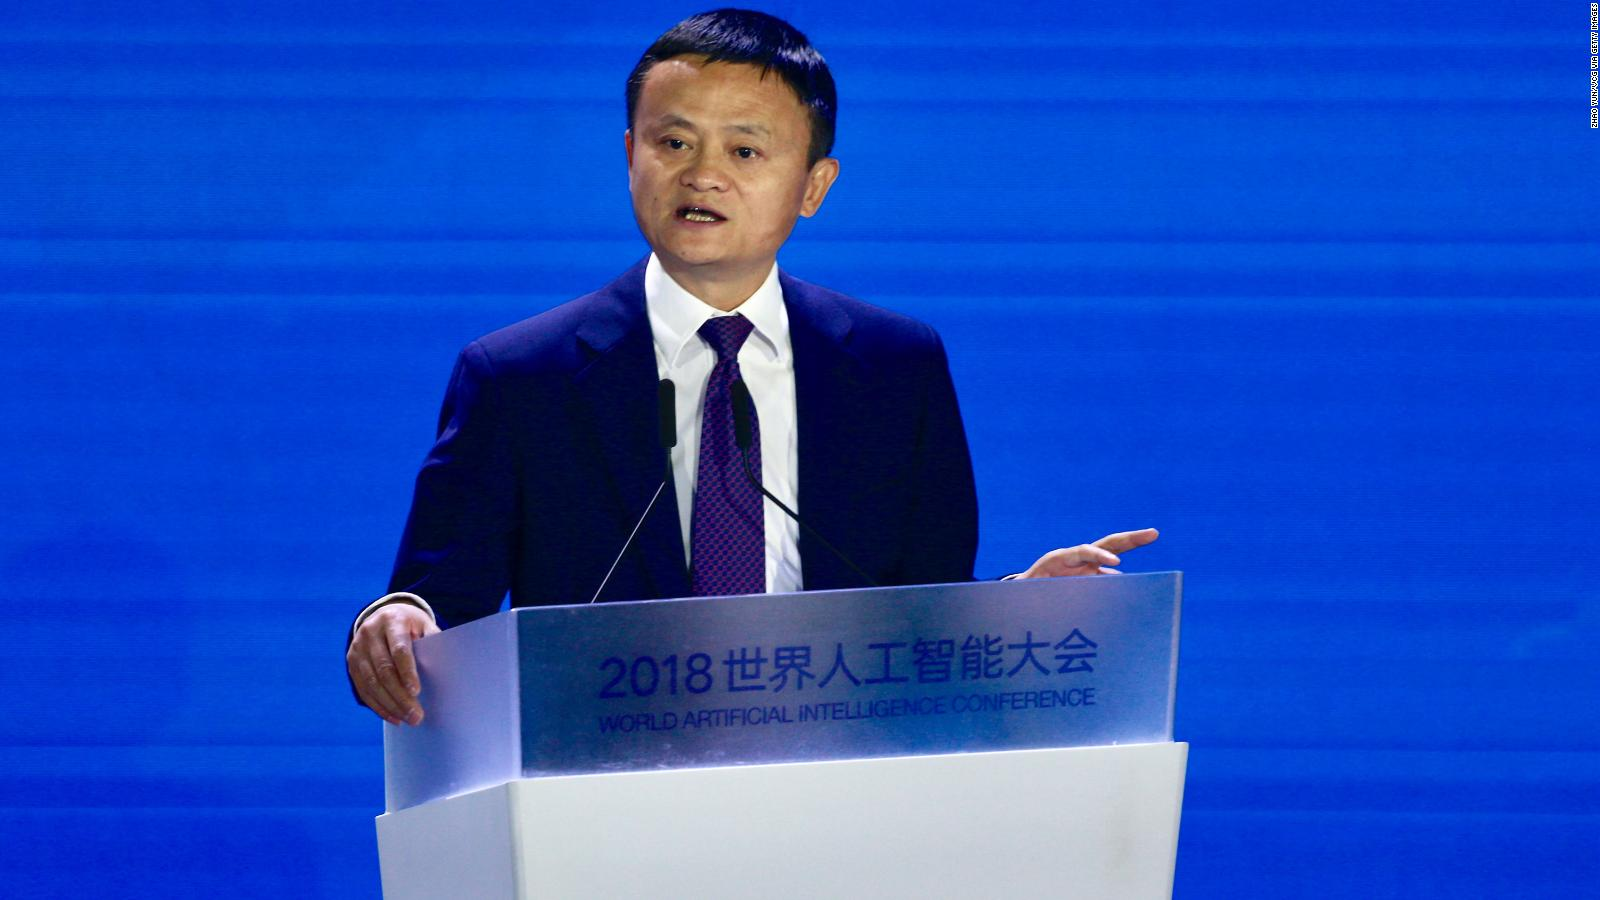 Jack Ma Alibaba Founder Revealed To Be A Chinese Communist Party